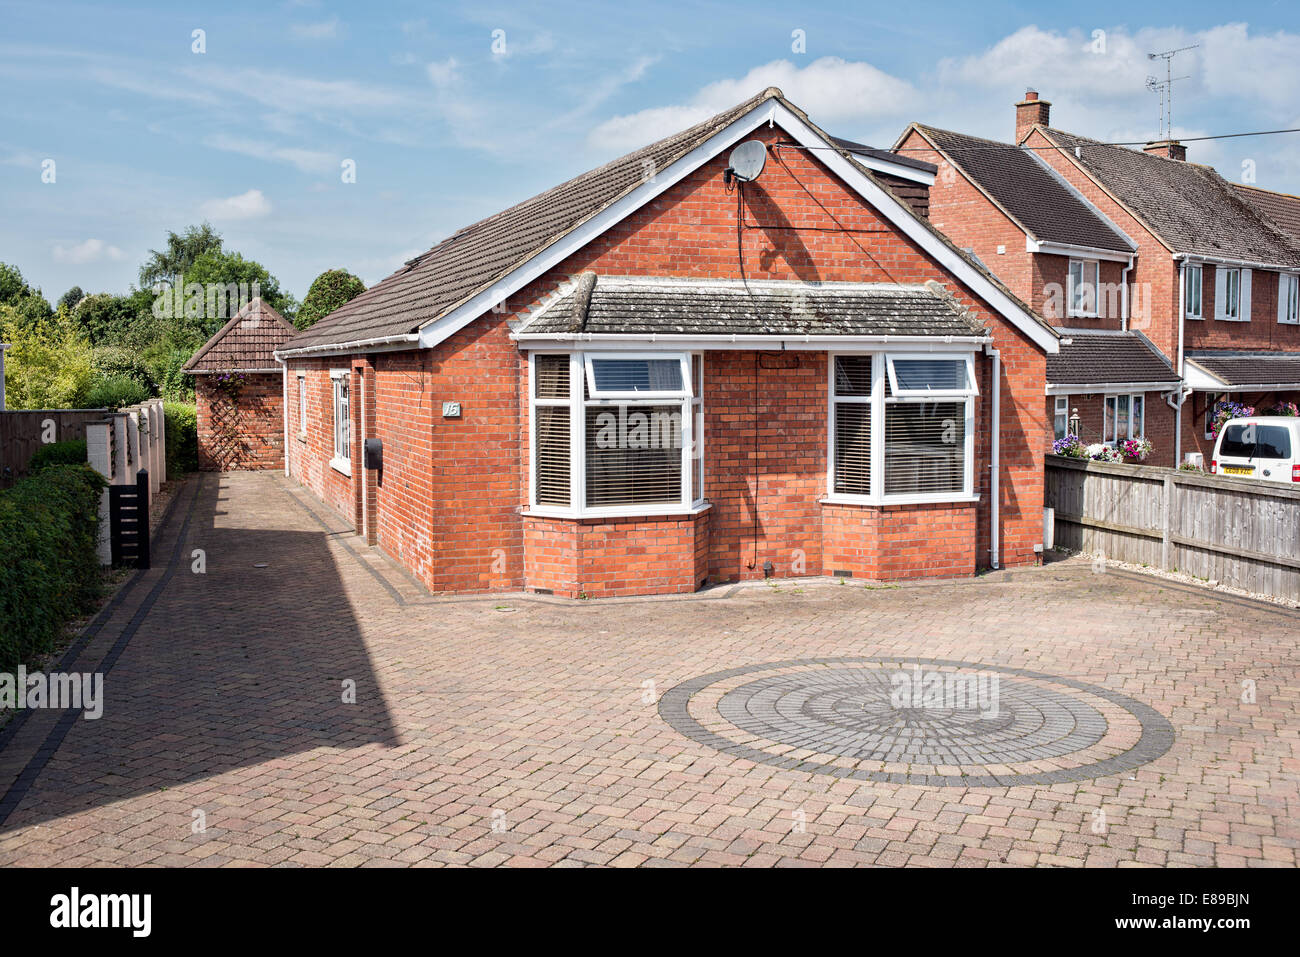 A Renovated Extended Double Glazed Red Brick Bungalow With Block Paved Forecourt On Sunny Day Wiltshire UK